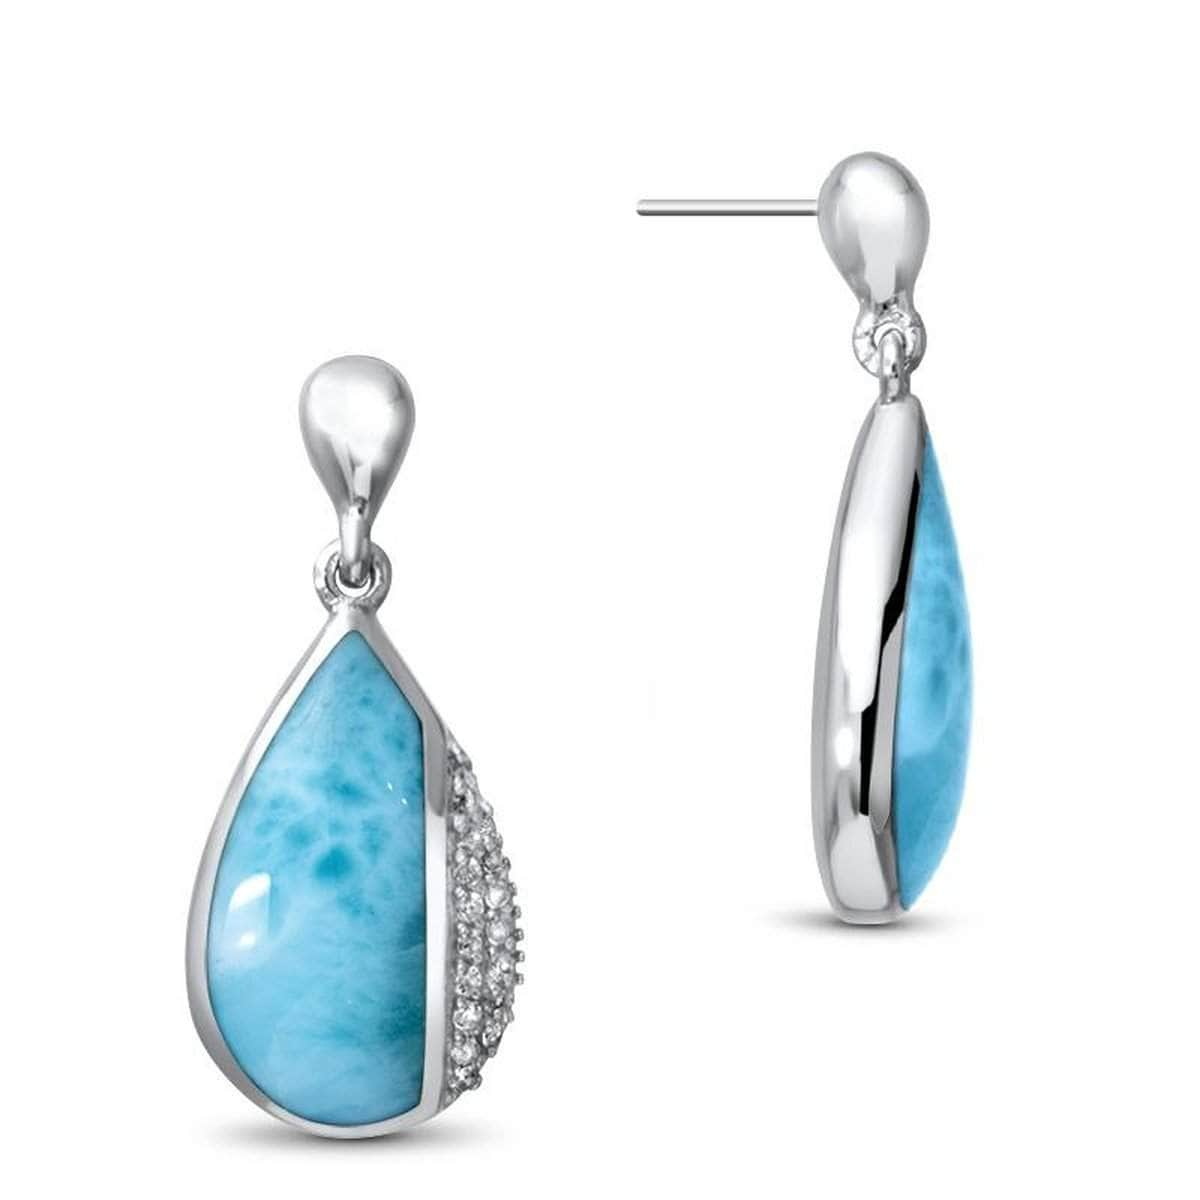 Divine Earrings - Edivi00-00-Marahlago Larimar-Renee Taylor Gallery